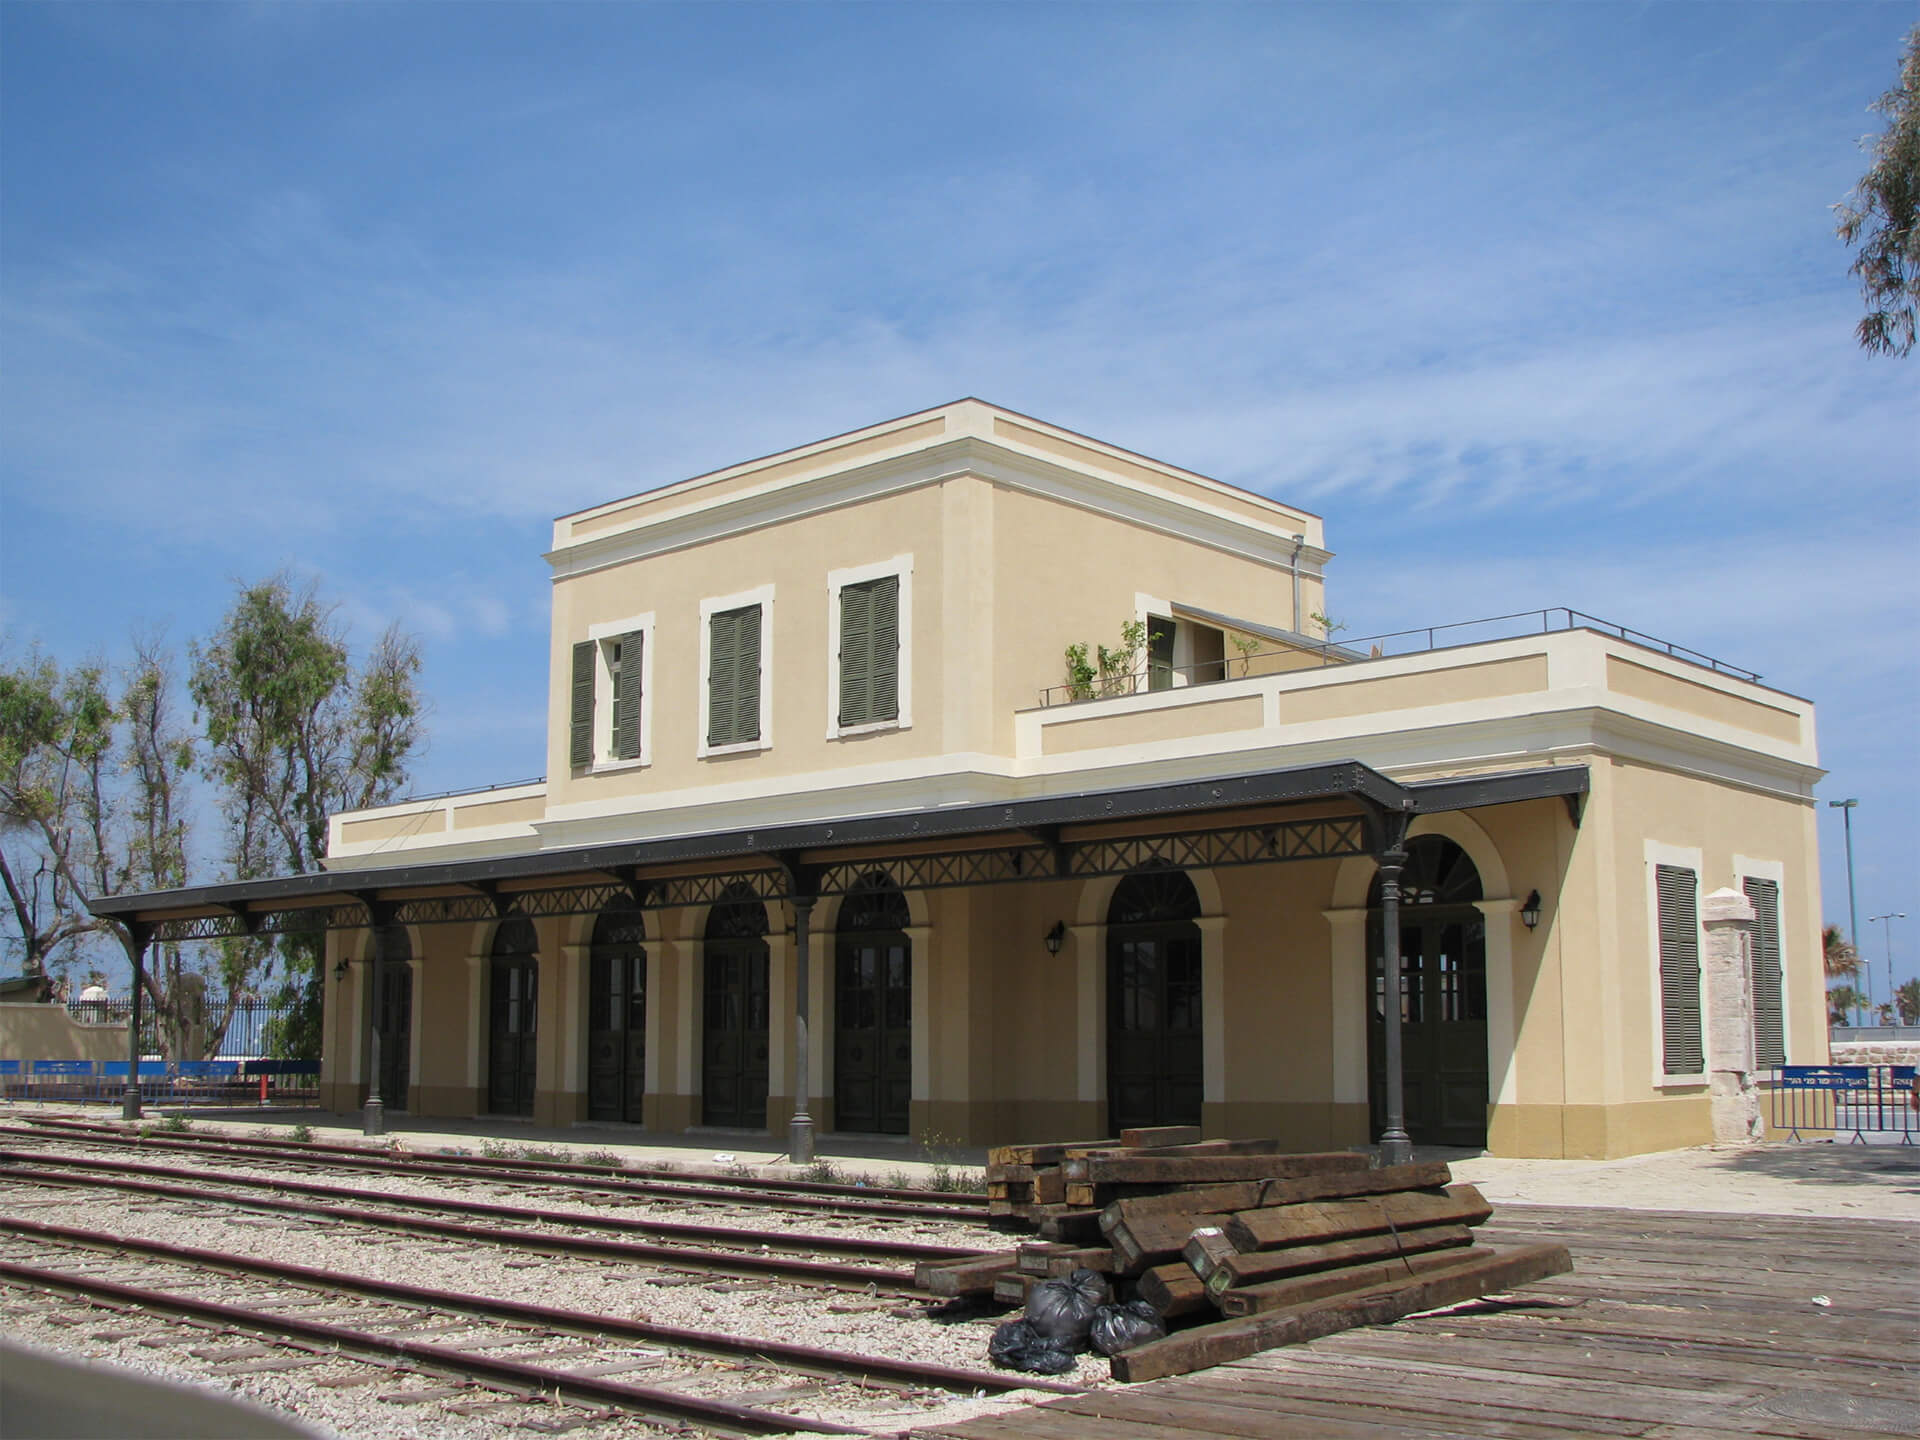 The First Train Station